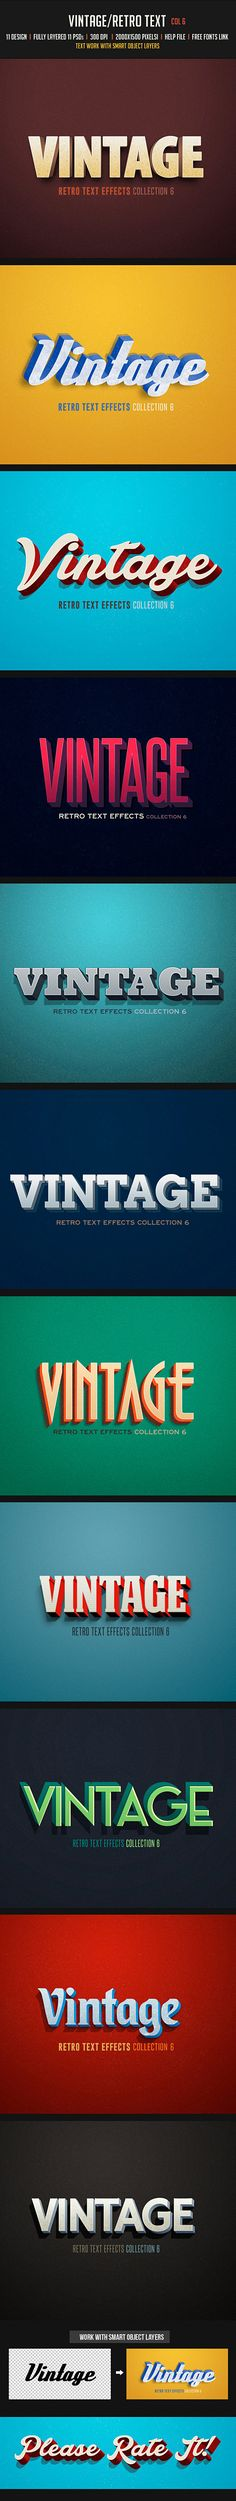 #Vintage / #Retro Text Col 6 - Text Effects Actions #Actions #Text #Letters #TextEffects #TextActions #Photoshop #PSActions